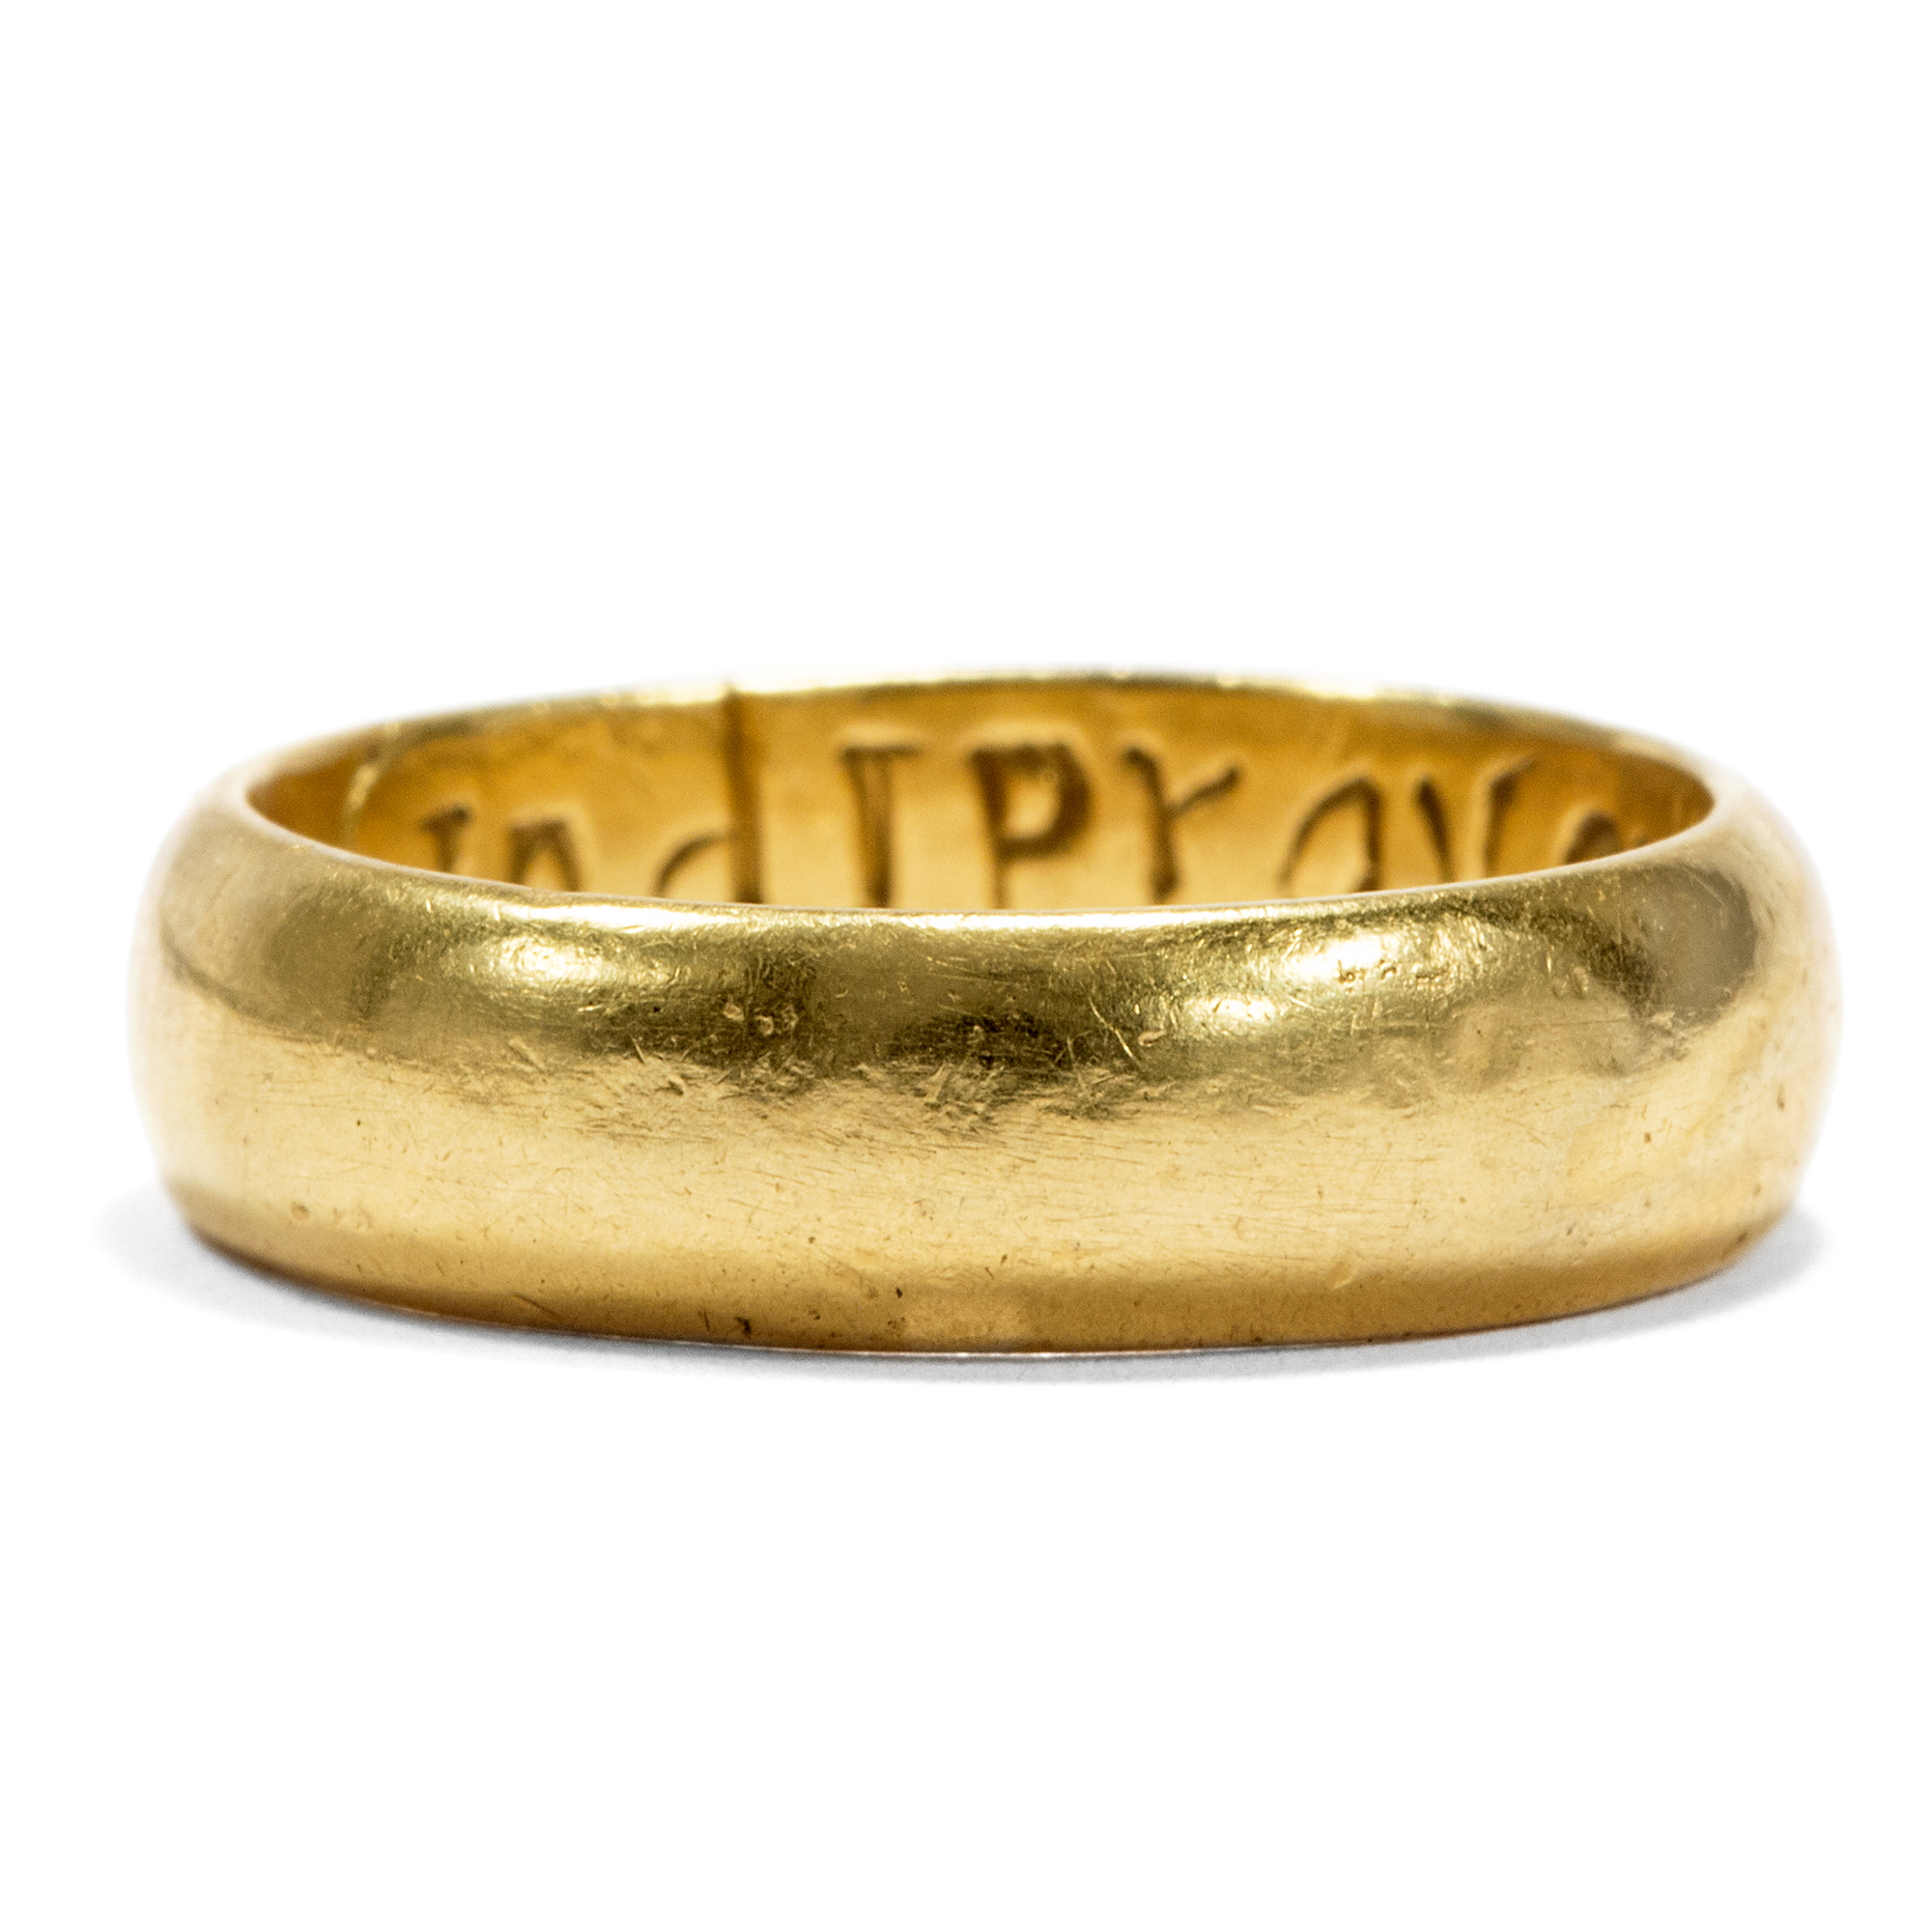 2018 Gold Plated Lord of The Rings Inspired Engraved Inscription Ring Necklace